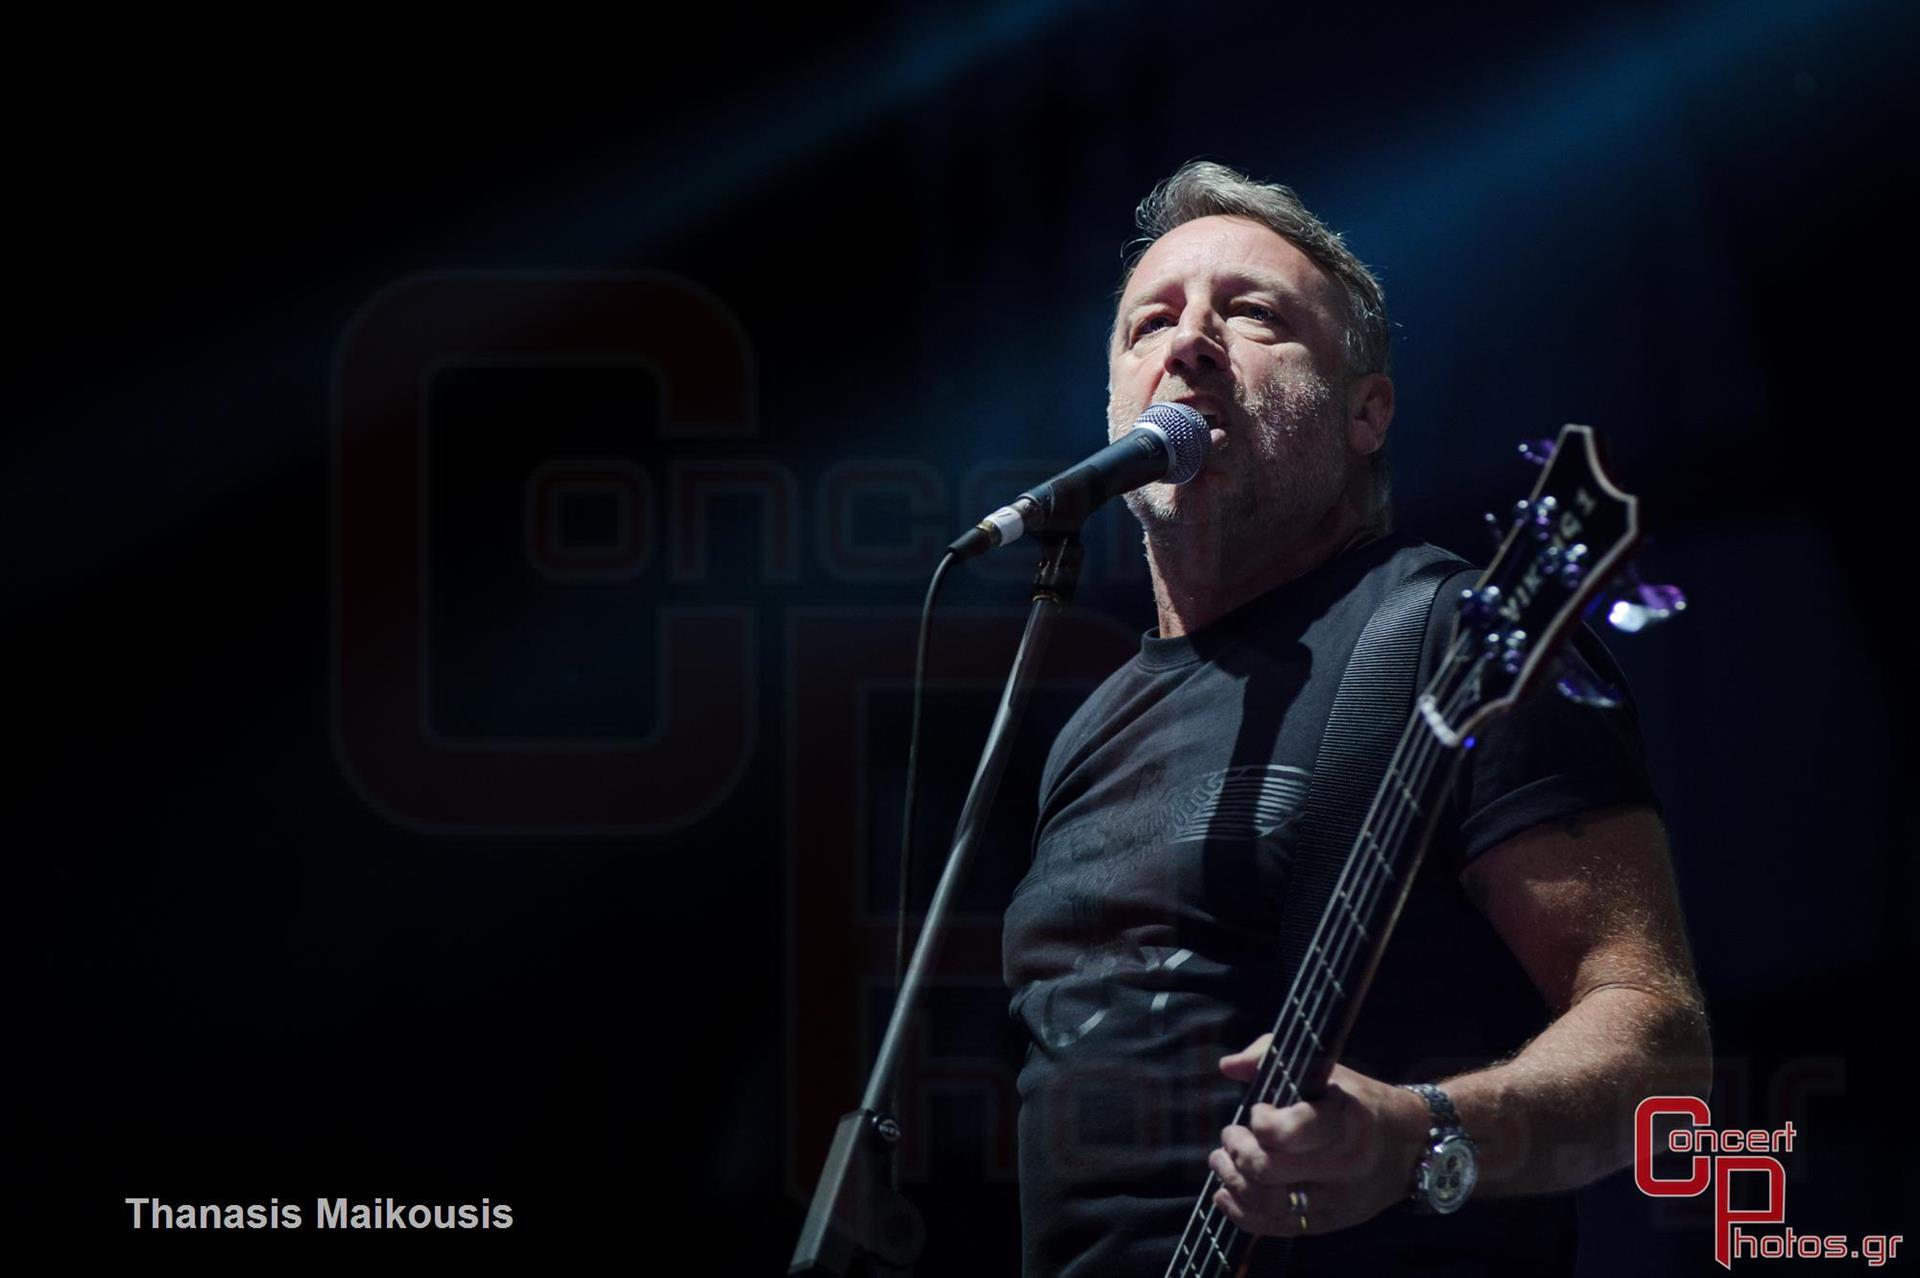 Peter Hook & The Light -Peter Hook & The Light Ejekt 2013 photographer: Thanasis Maikousis - concertphotos_-9278